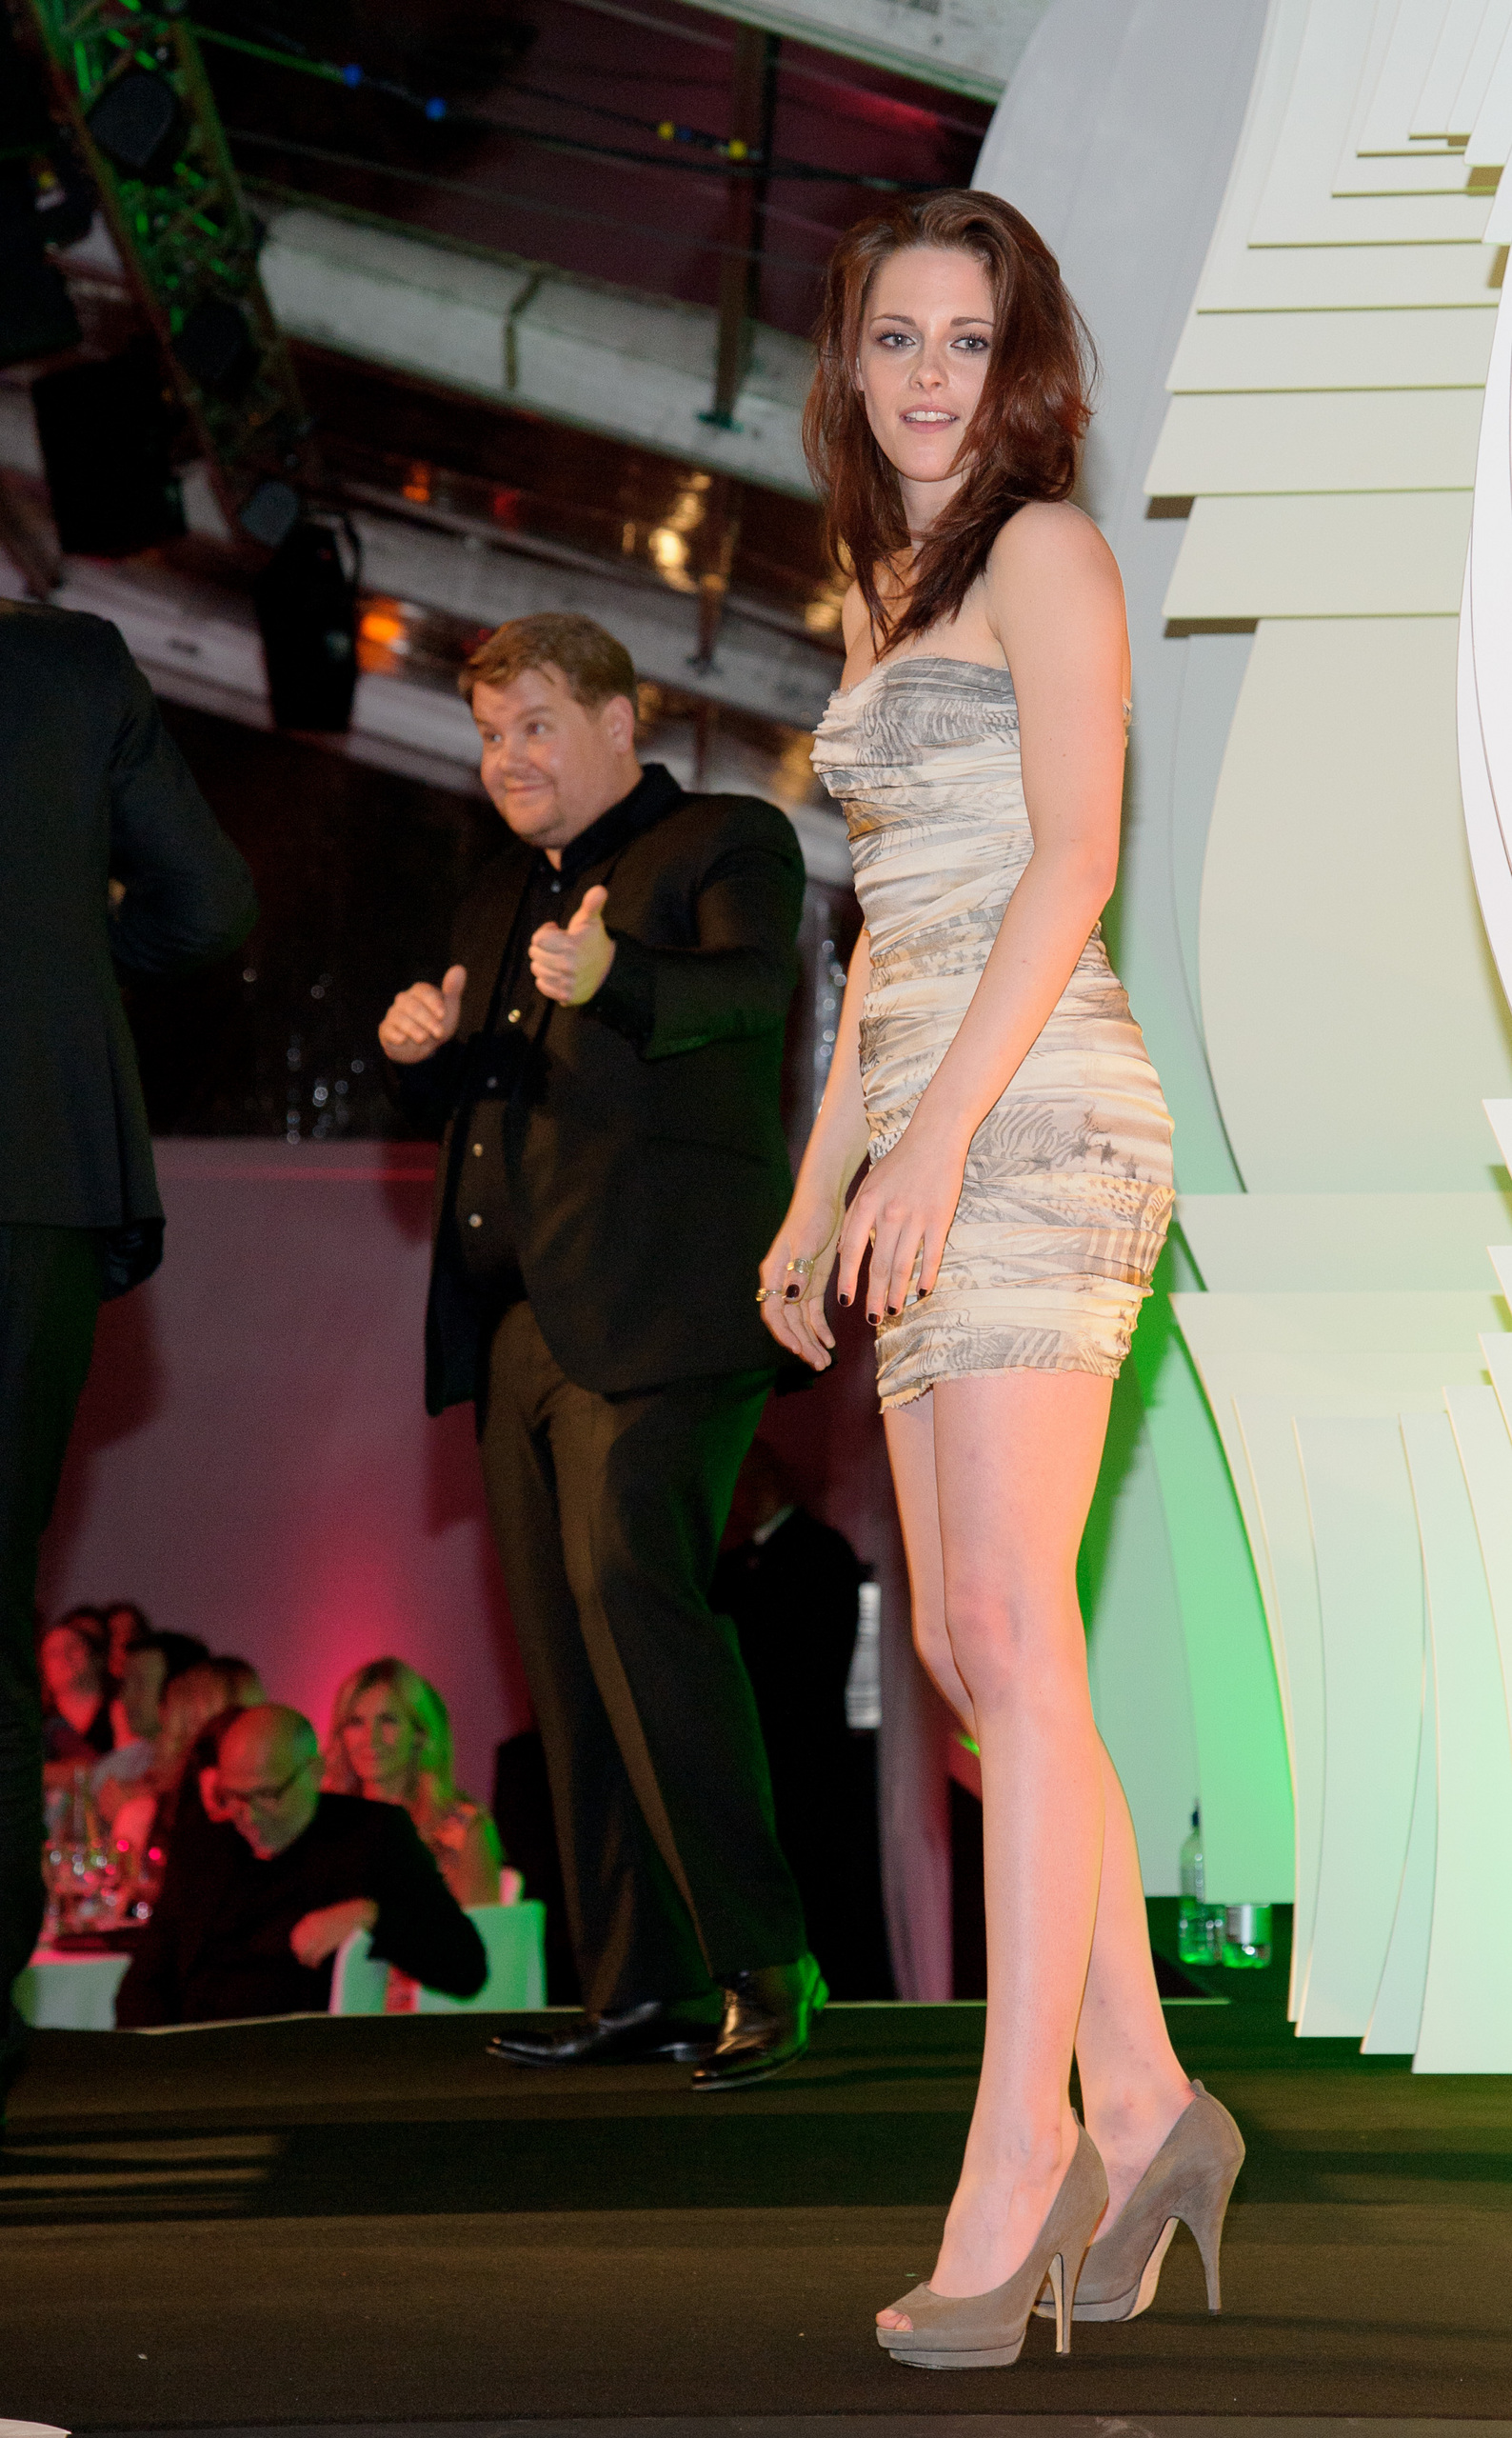 Kristen At the Glamour Awards